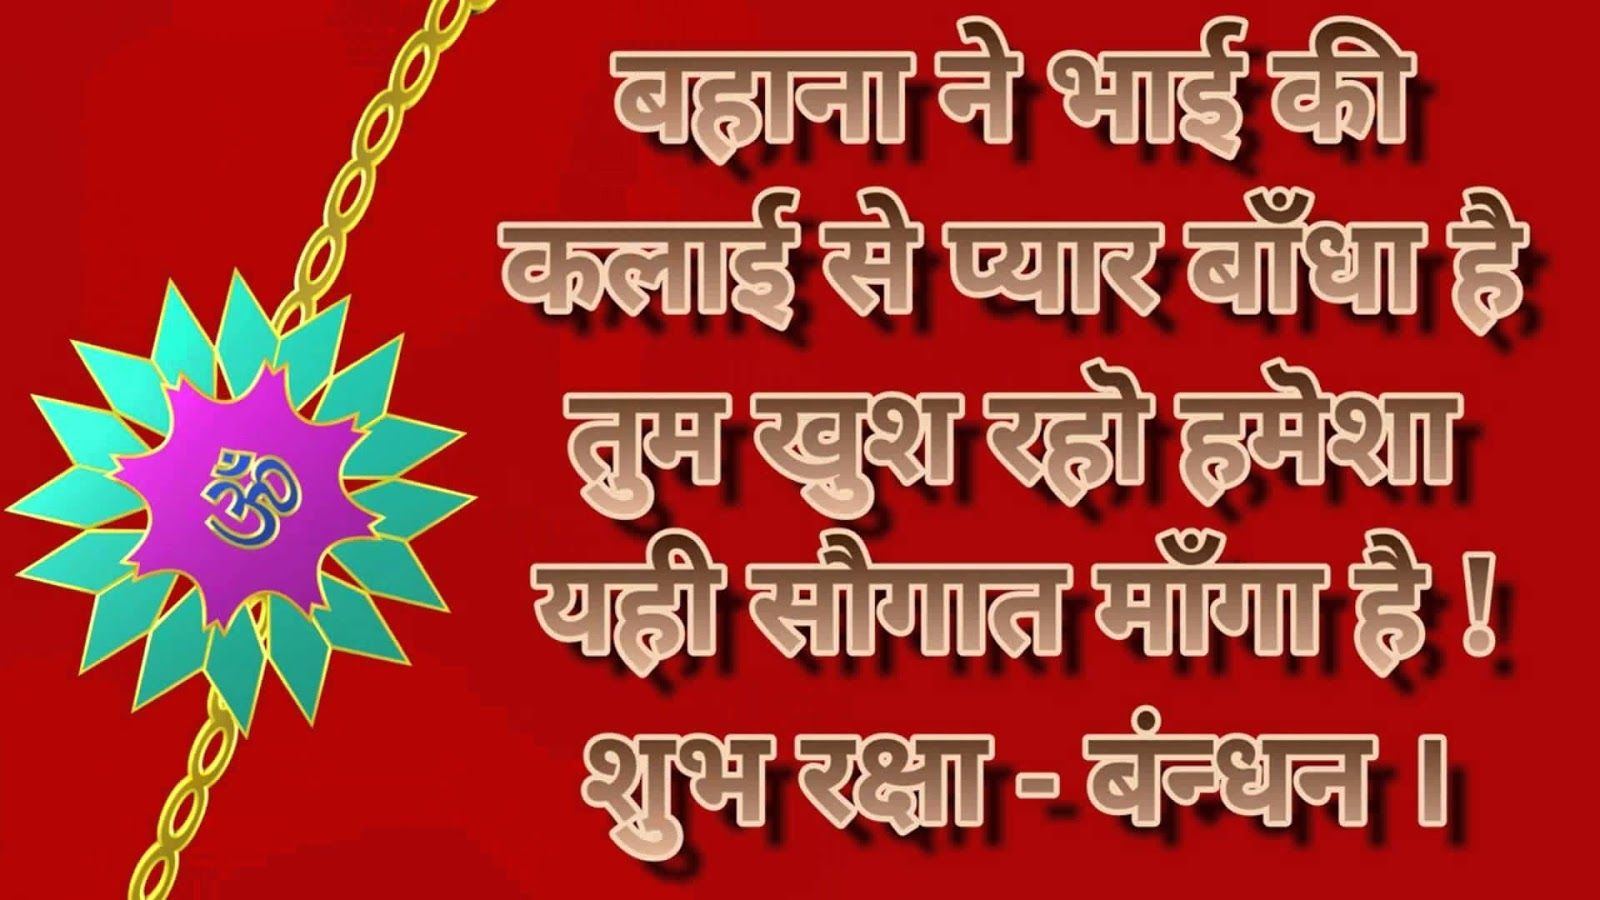 raksha bandhan wishes in hindi for rakhi rakhi festival  raksha bandhan wishes in hindi for rakhi 2016